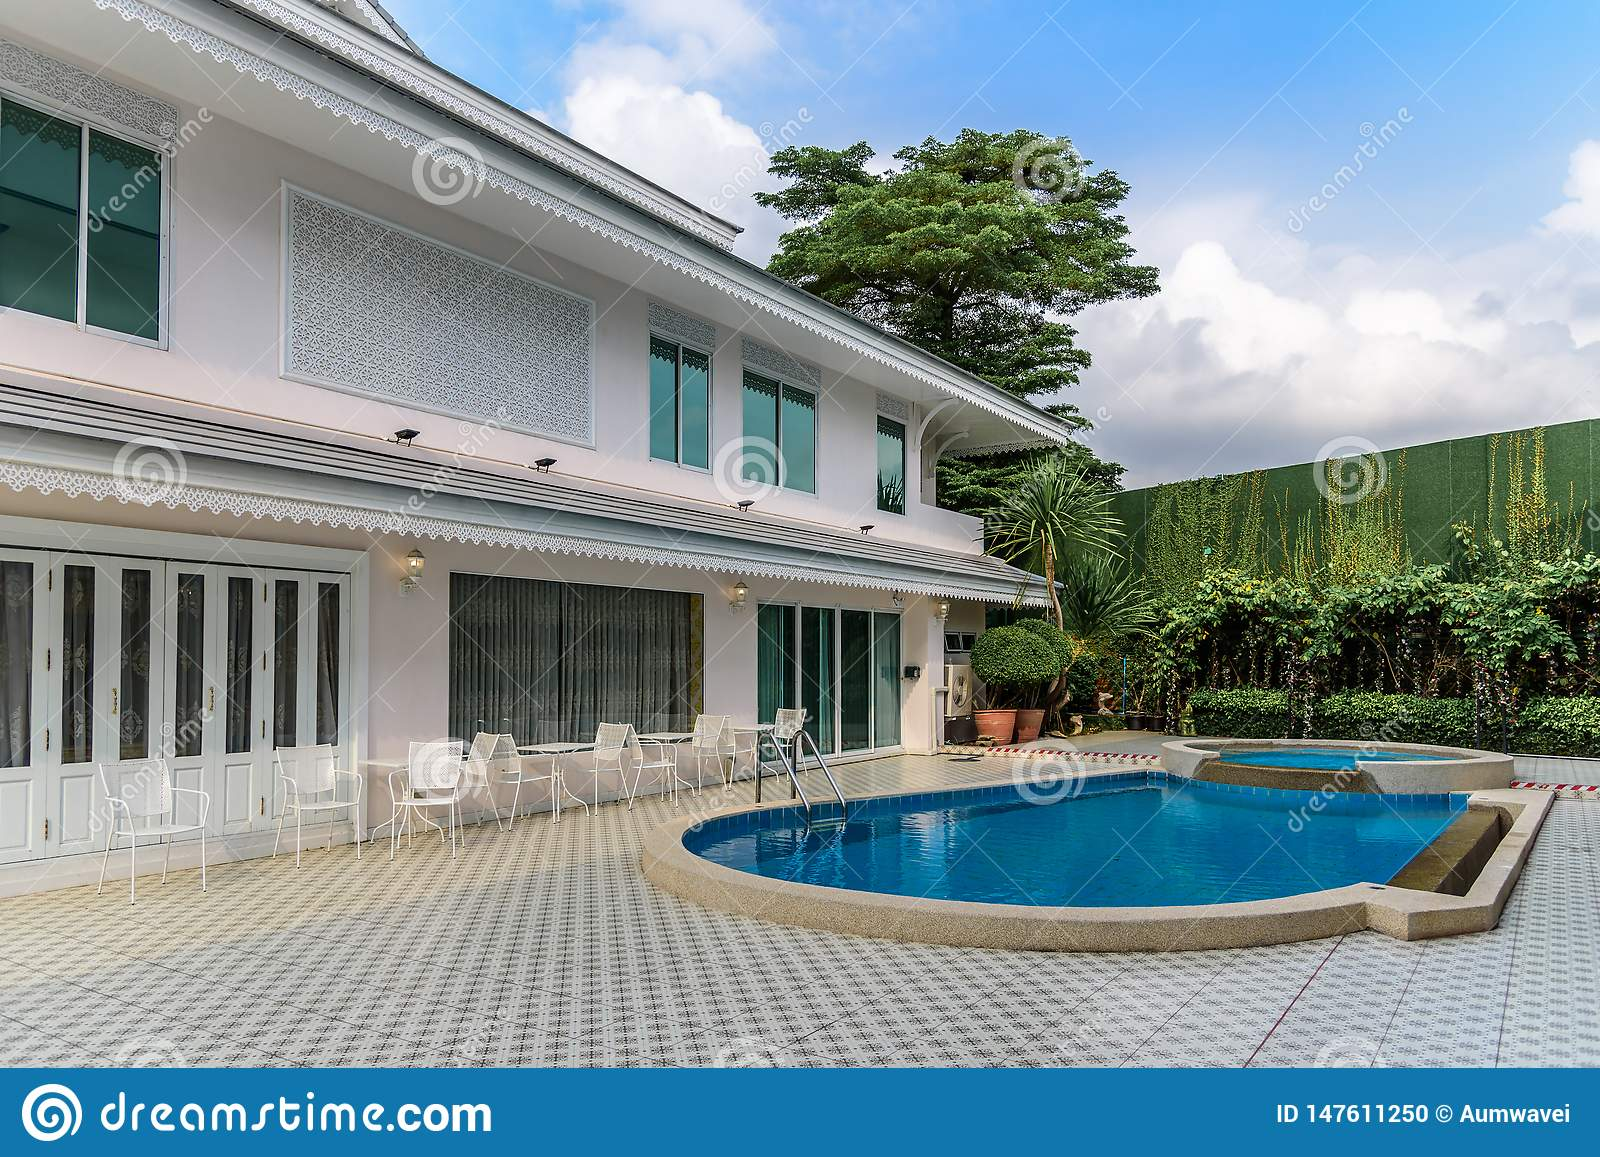 Two-story house with fence and swimming pool